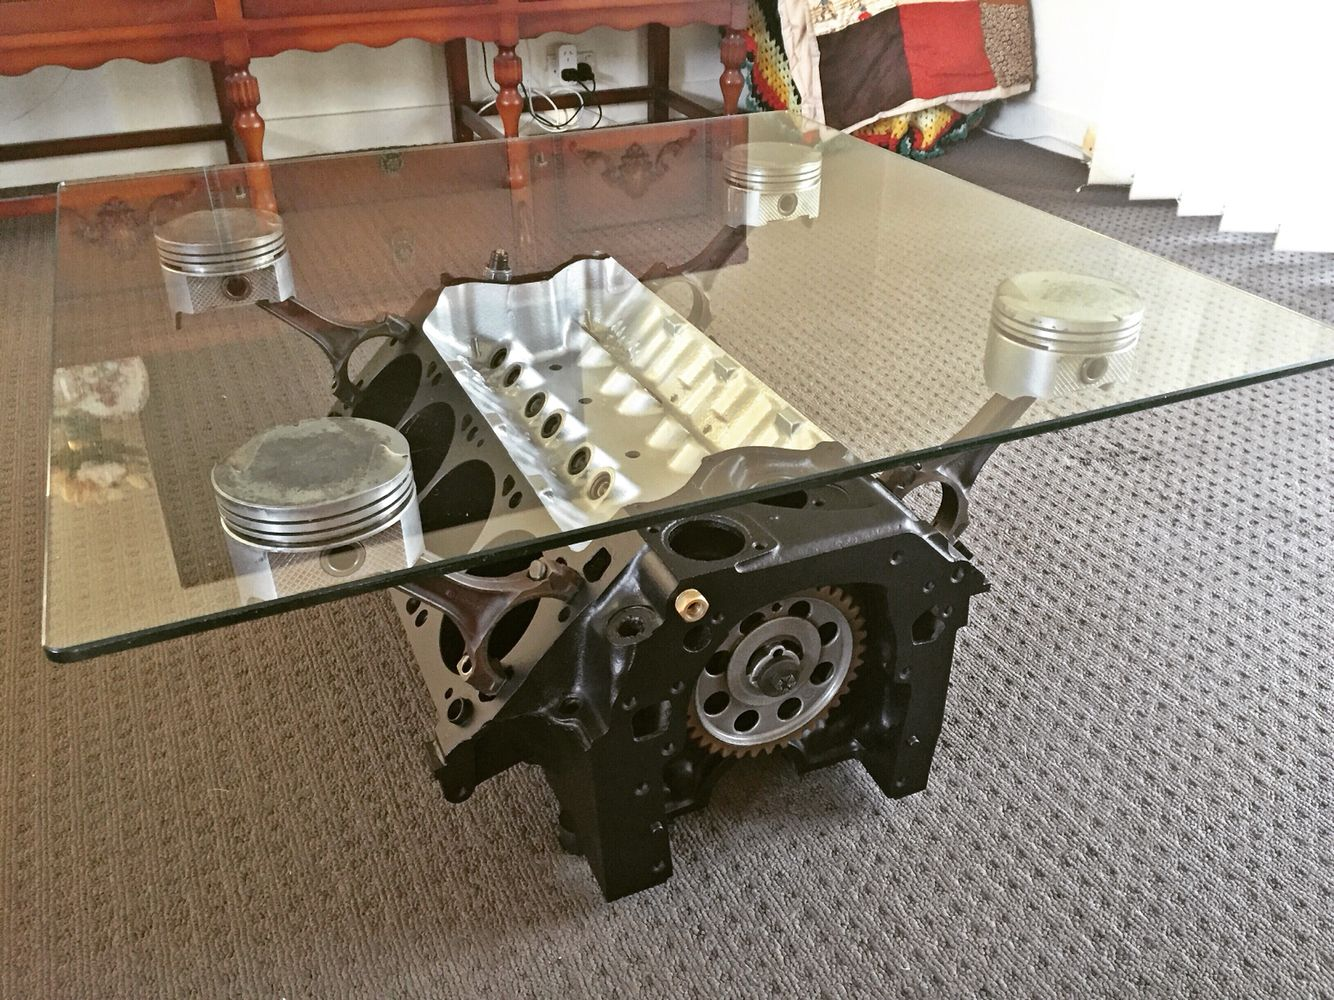 Cleveland 351w V8 Coffee Table. This Ones A Beast. Turn Over And Watch The